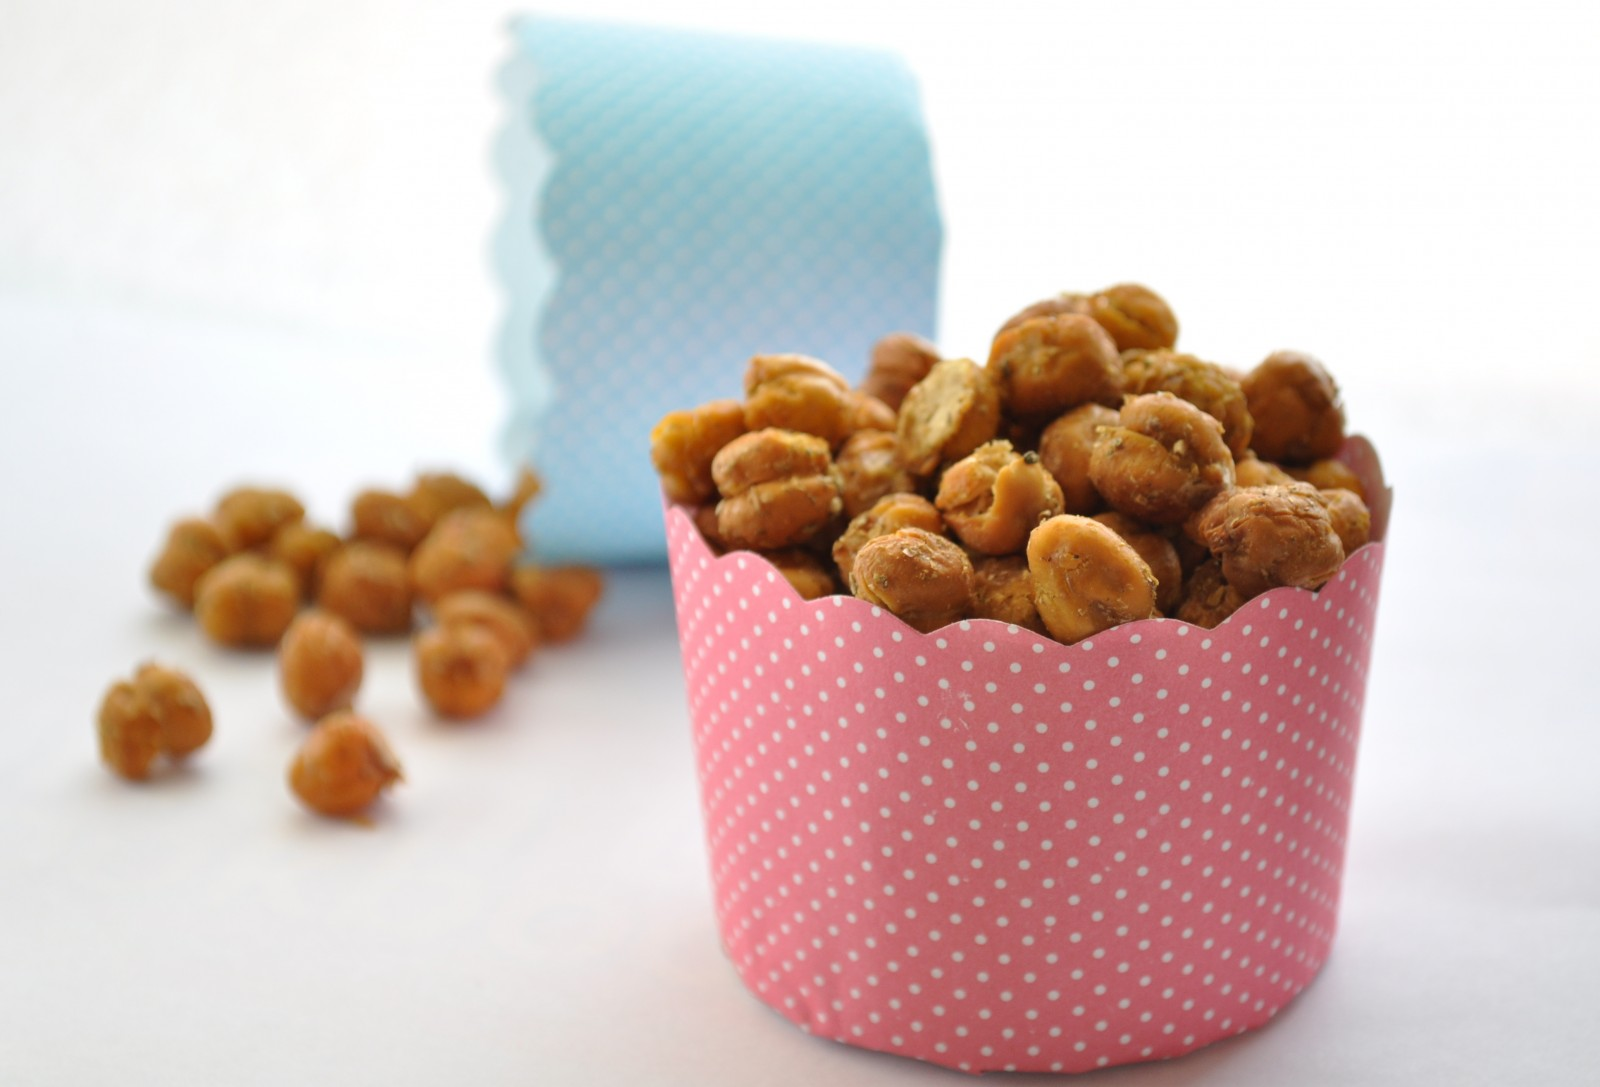 Crispy roasted chickpea nibbles